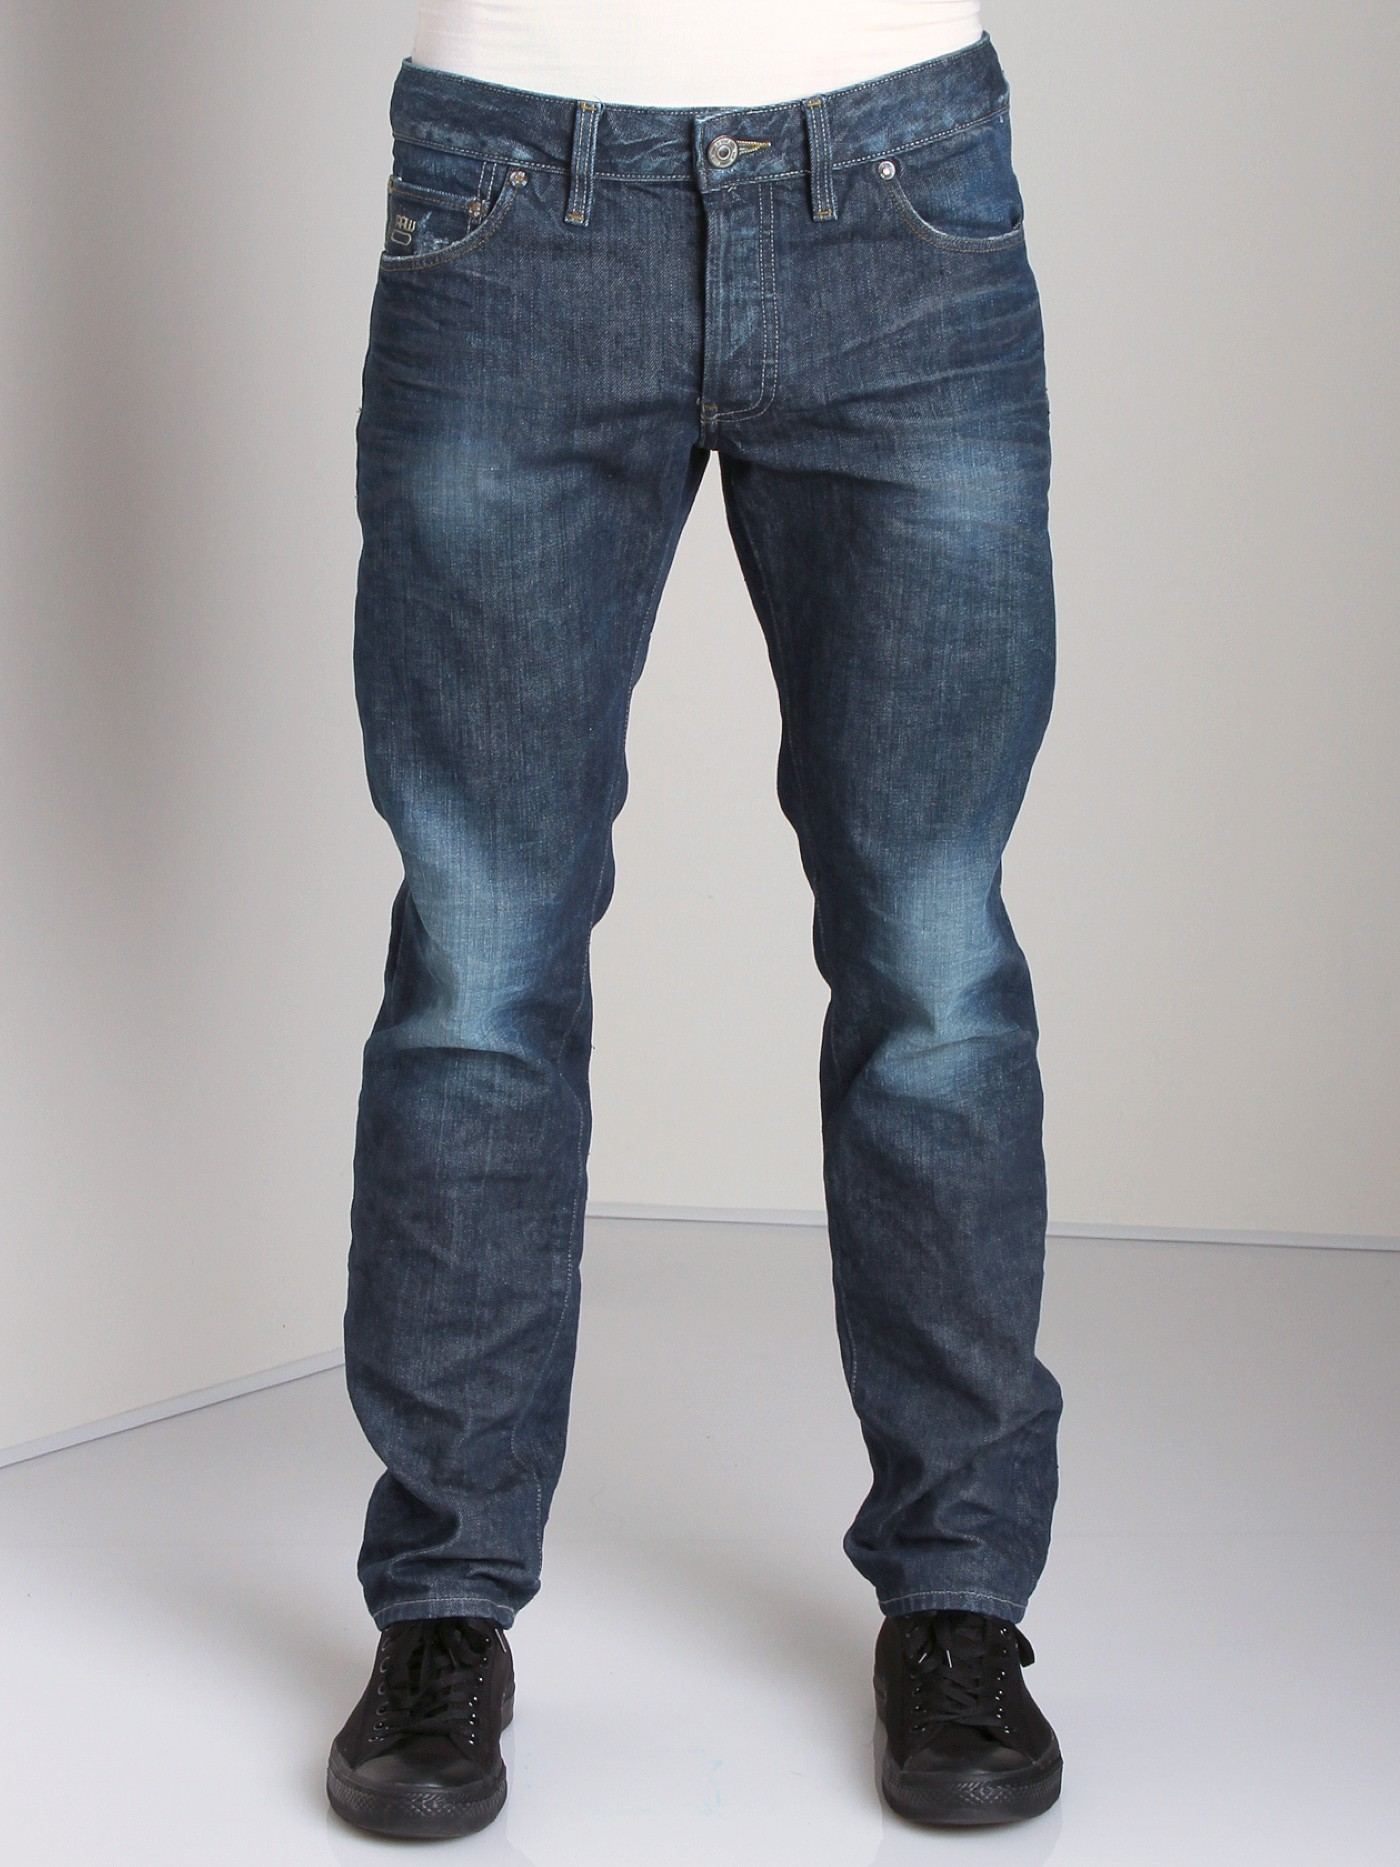 4dcd11f2564 G-Star 3301 Low Tapered Jeans Red Listing 50778.4638.89 at International  Jock